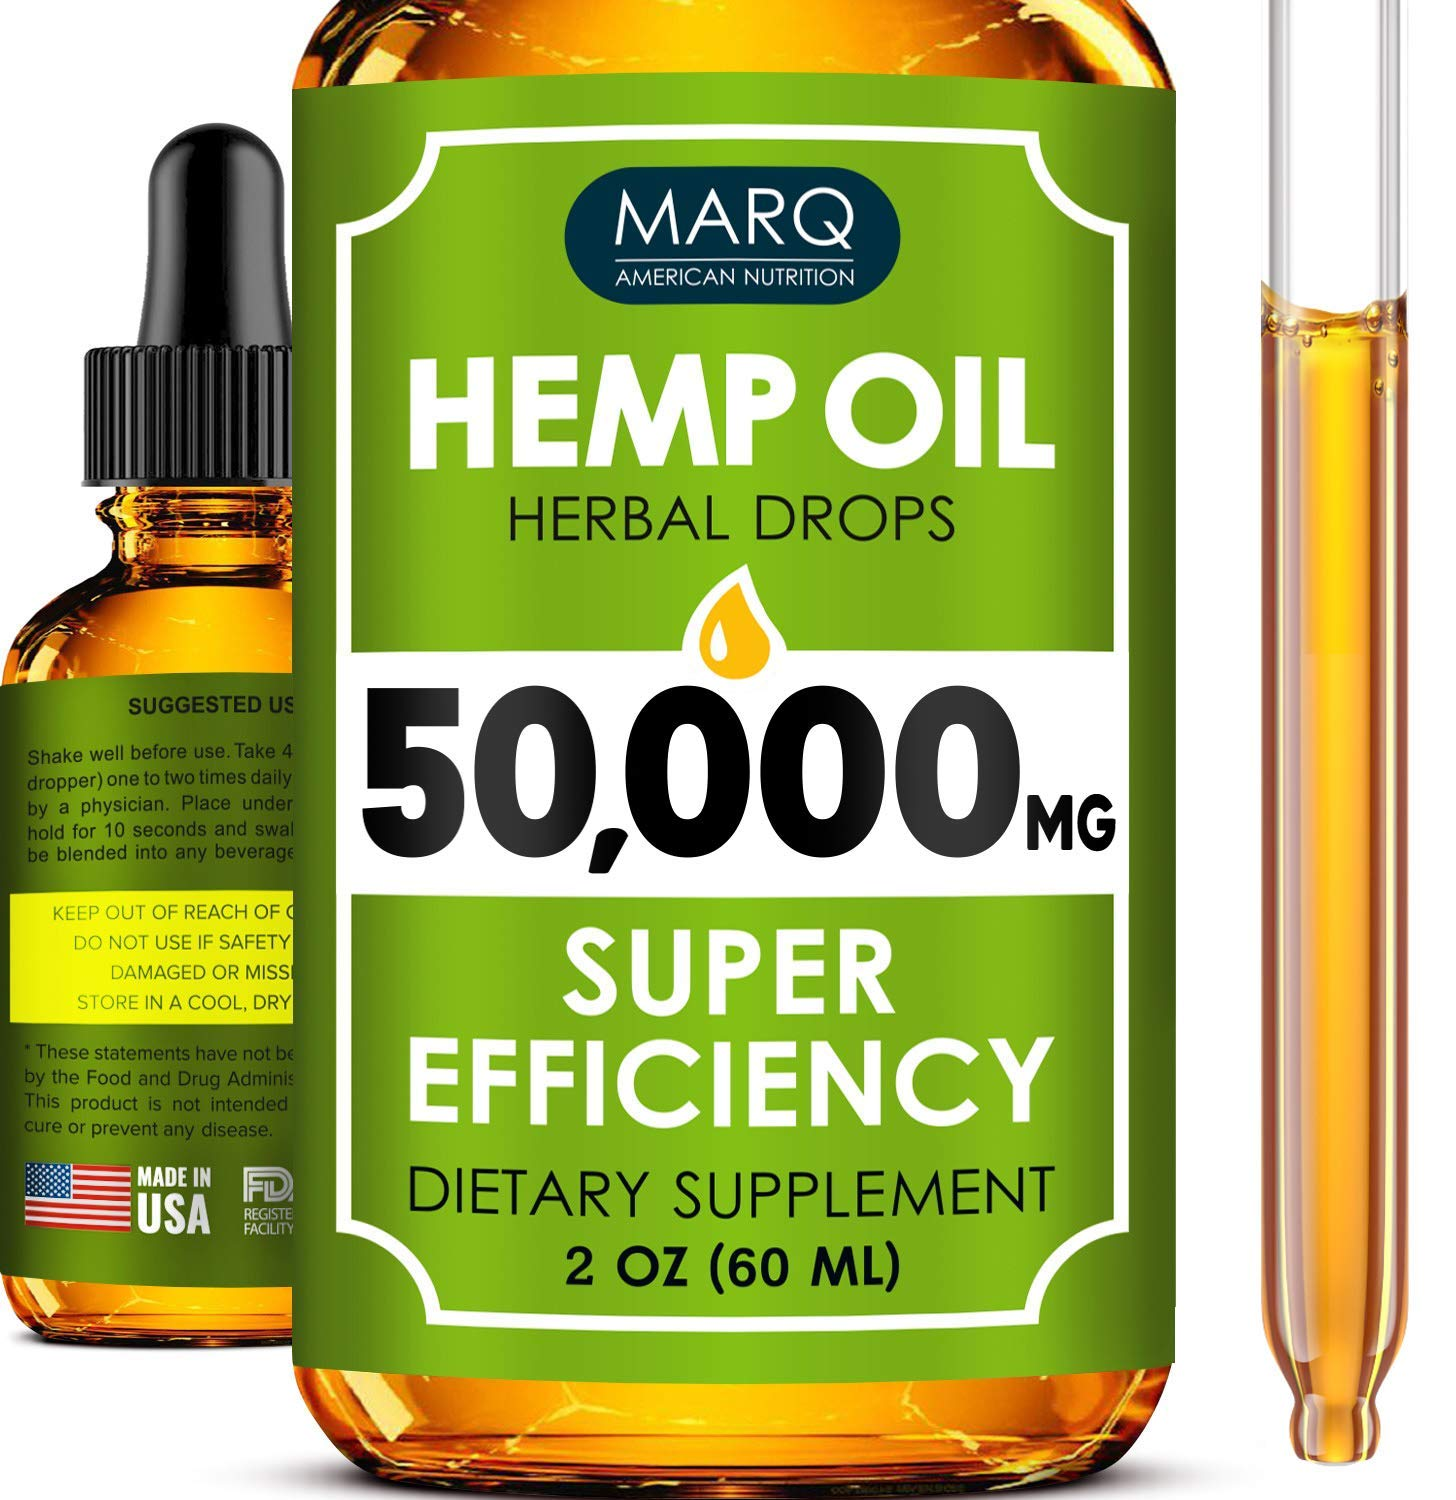 Hemp Oil Drops (50000MG) - Best Natural Hemp Seed Oil - Premium Colorado Seed Extract - Only Natural Ingredients - for Pain and Inflammation Relief, Reduces Stress and Anxiety, Provides Restful Sleep by MARQ Nutrition